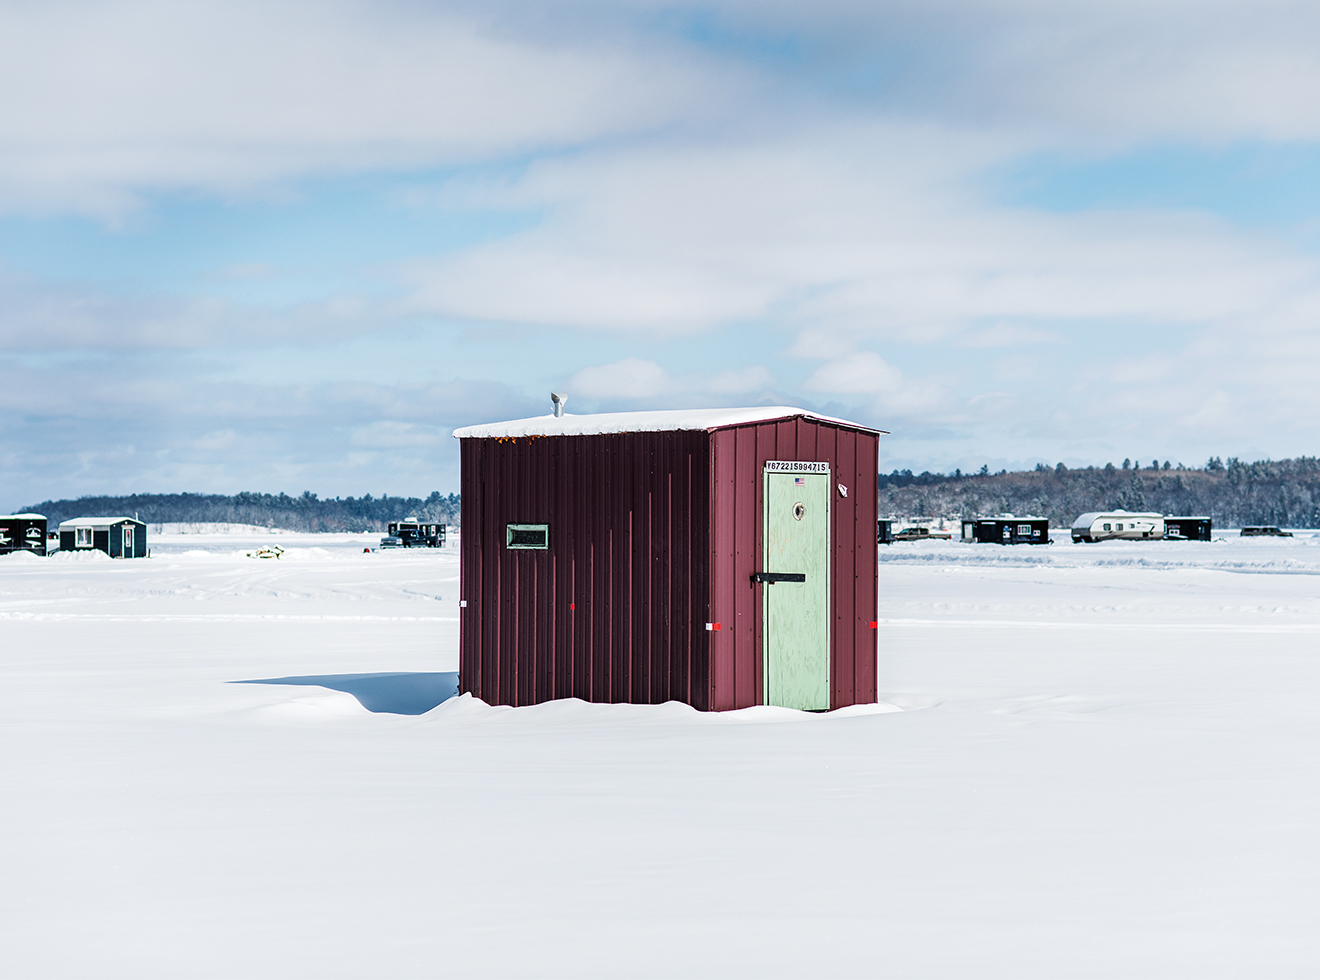 Portable fish houses dot Leech Lake.